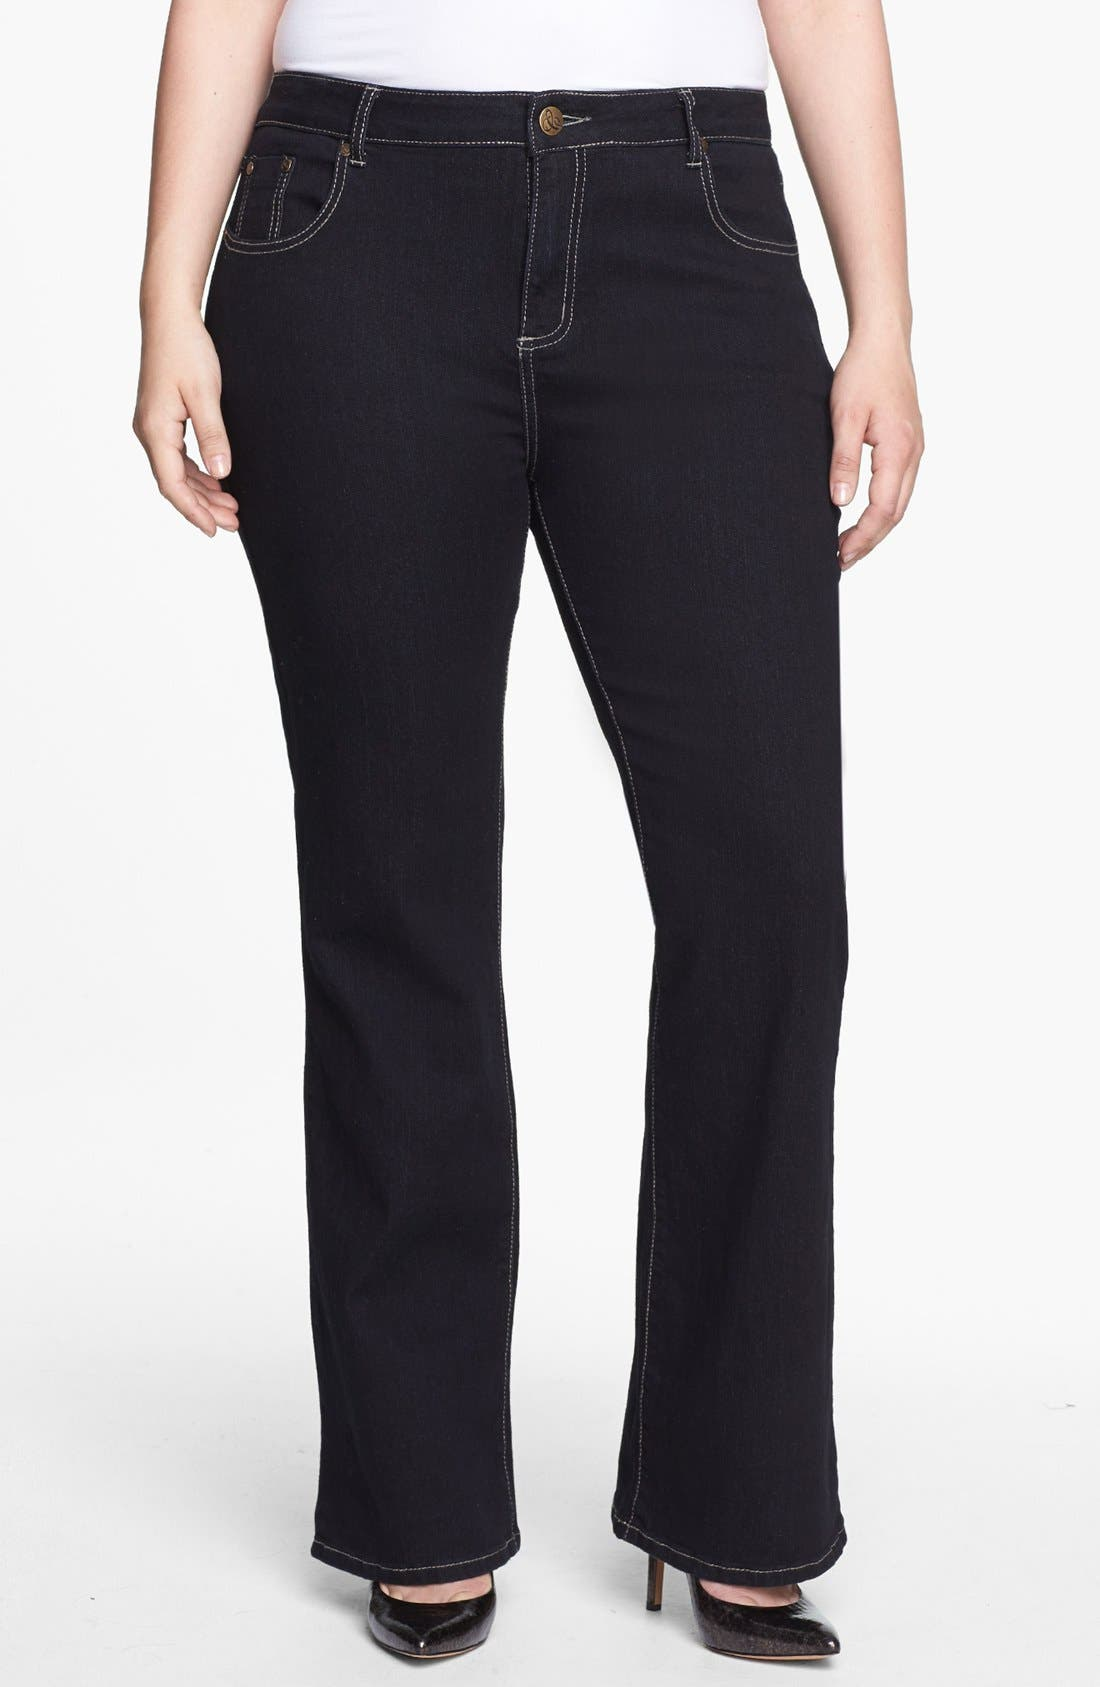 Alternate Image 1 Selected - City Chic 'Glam' Bootcut Stretch Jeans (Plus Size)